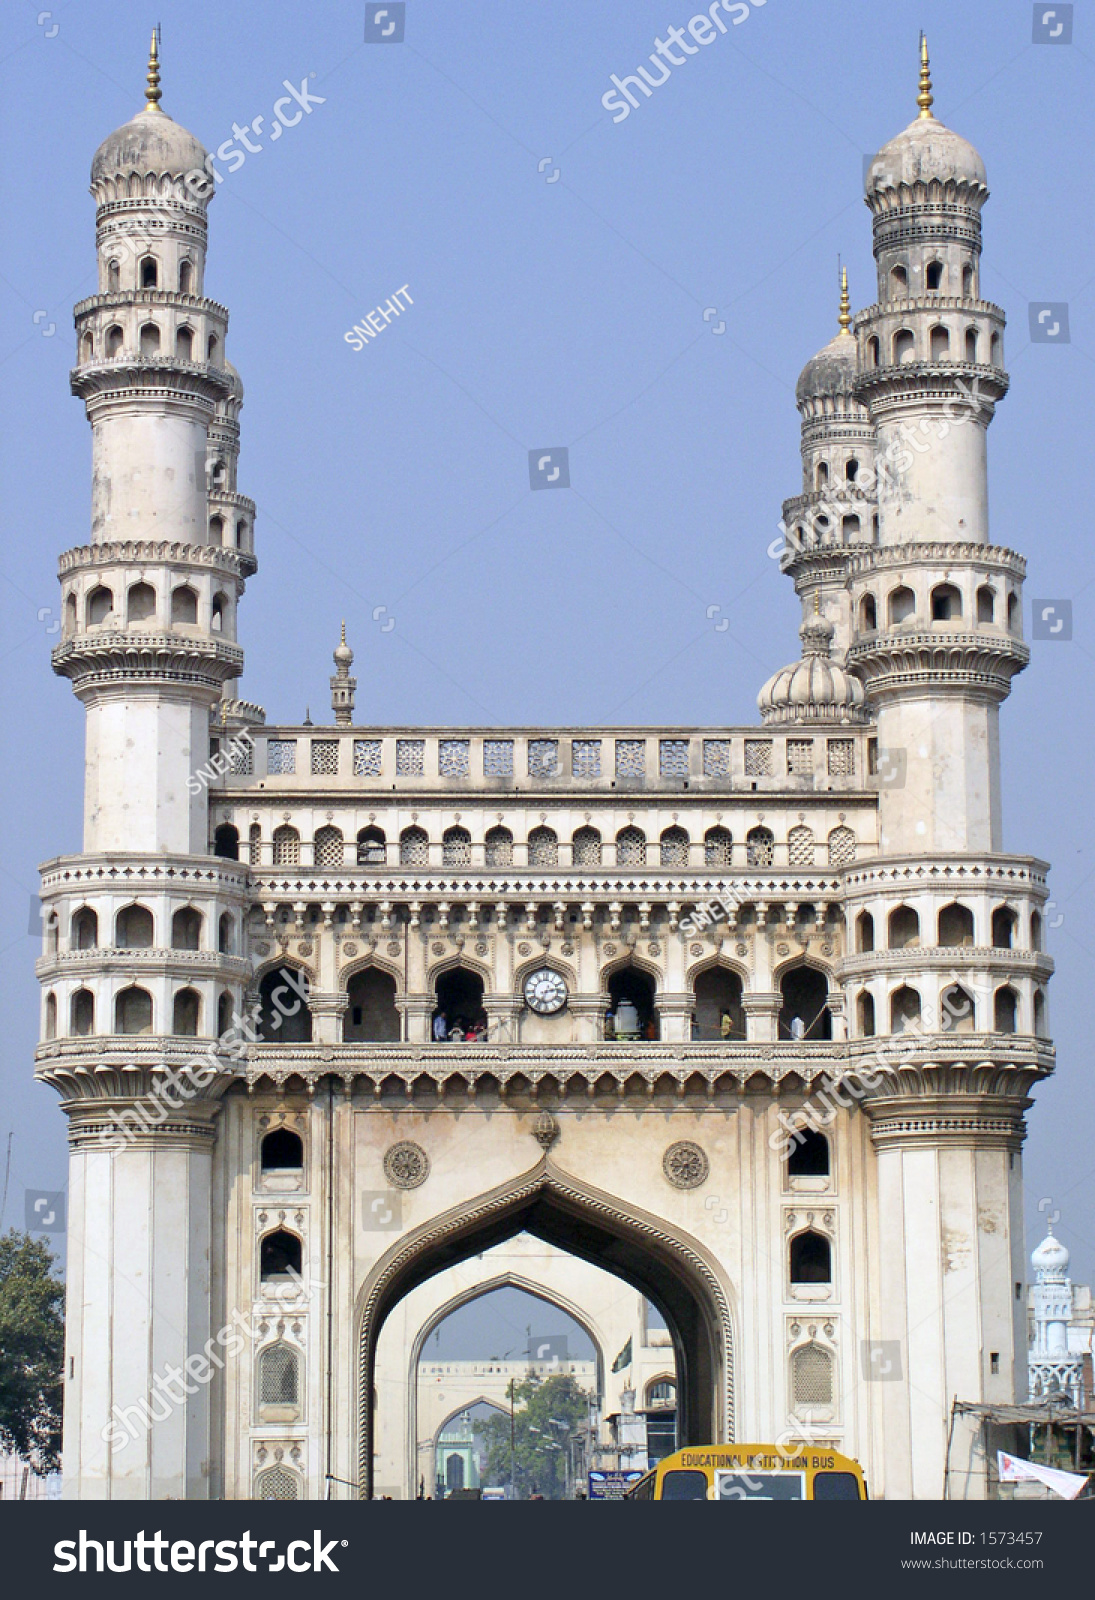 charminar stock photo 1573457   shutterstock